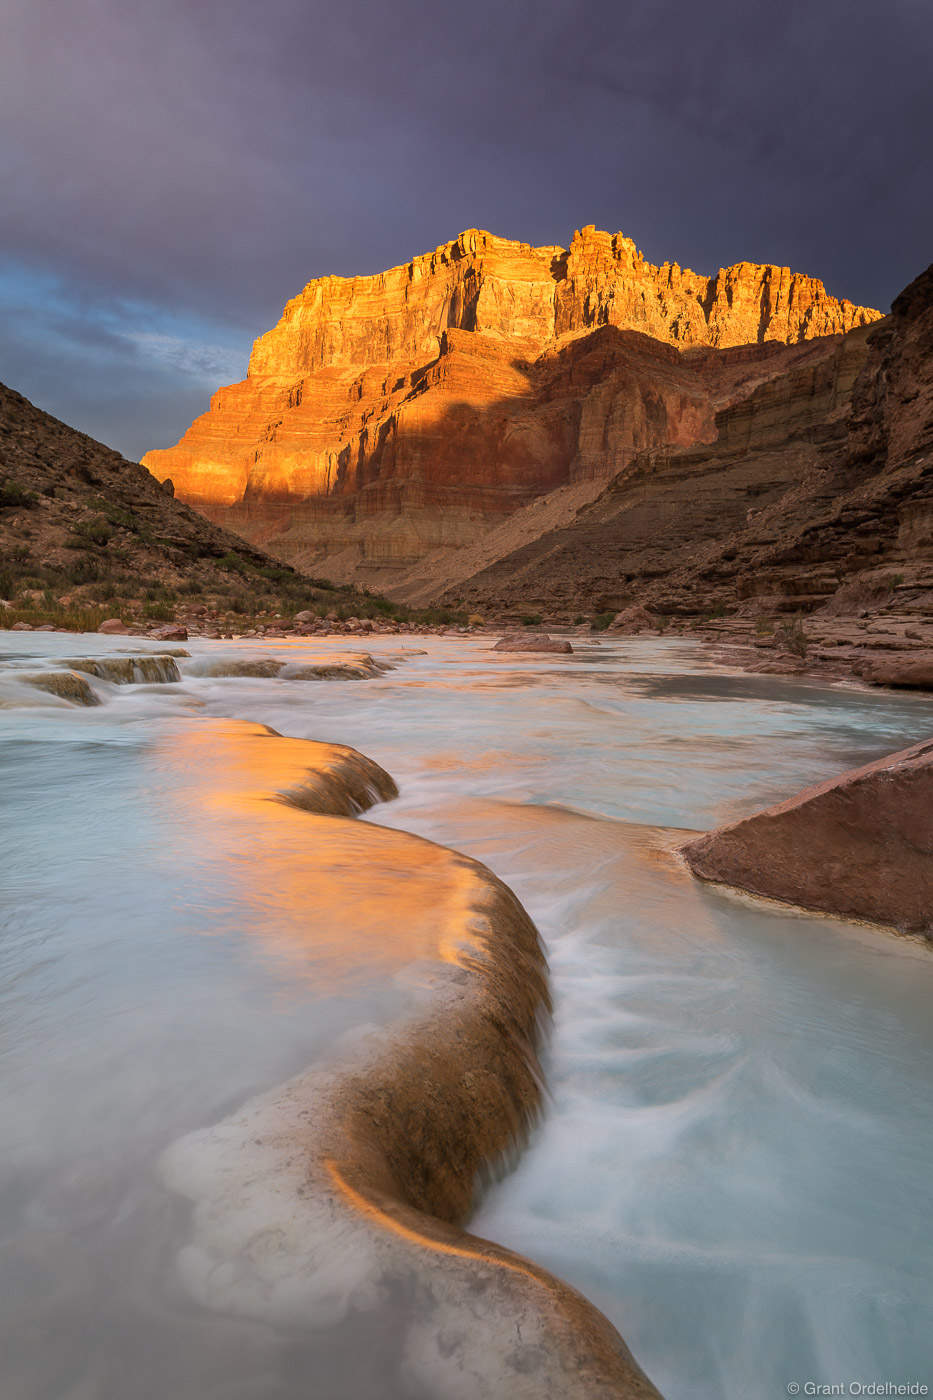 Sunrise over travertine formations along the Little Colorado River, a tributary of the Colorado at the bottom of the Grand Canyon...